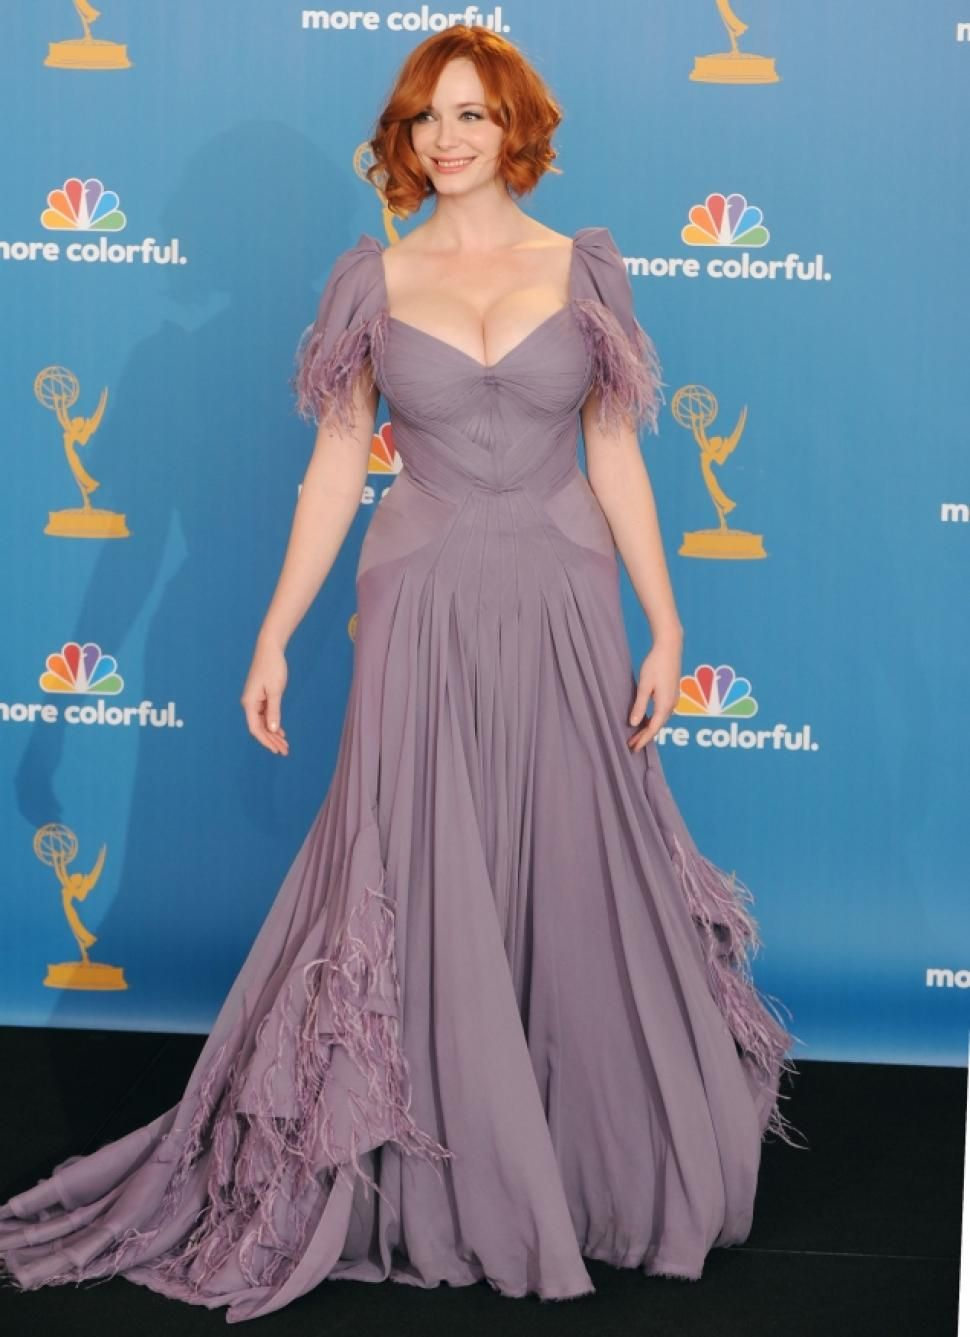 Pin de Upulvirenti en Christina Hendricks | Pinterest